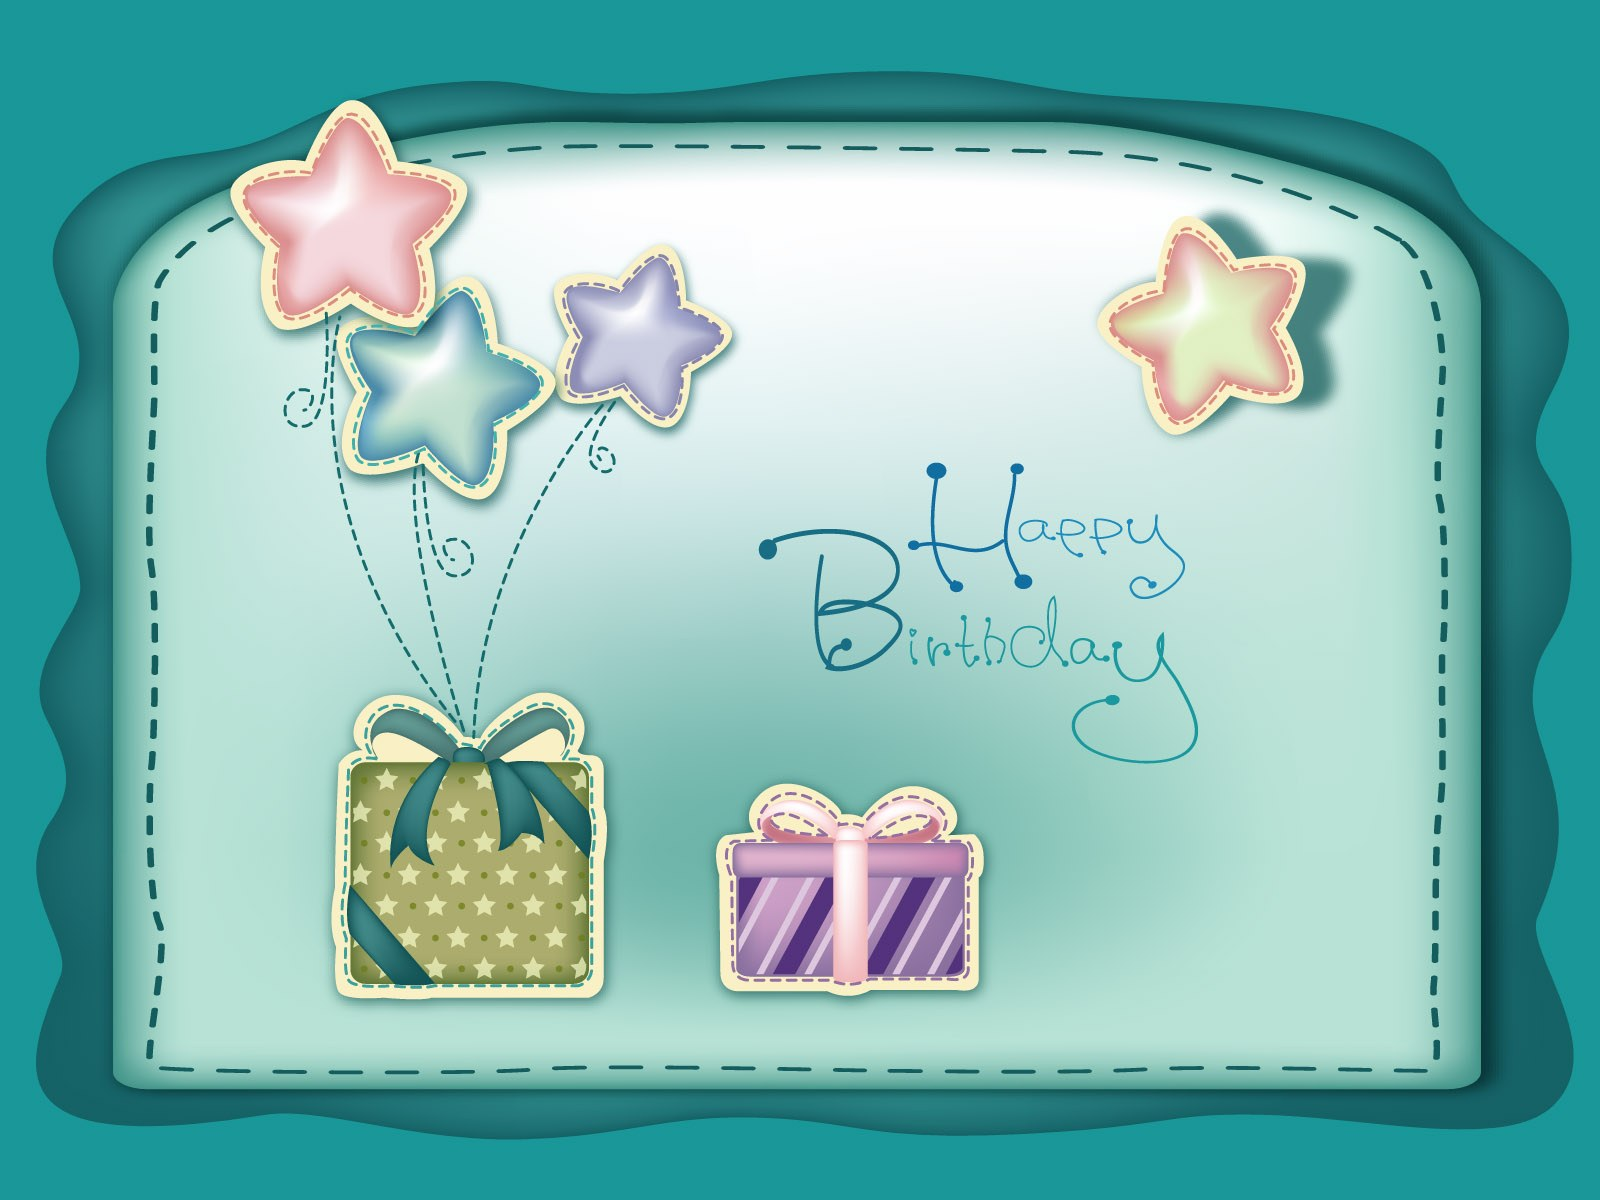 sober birthday greeting with cute little gifts embossed on front 1600x1200